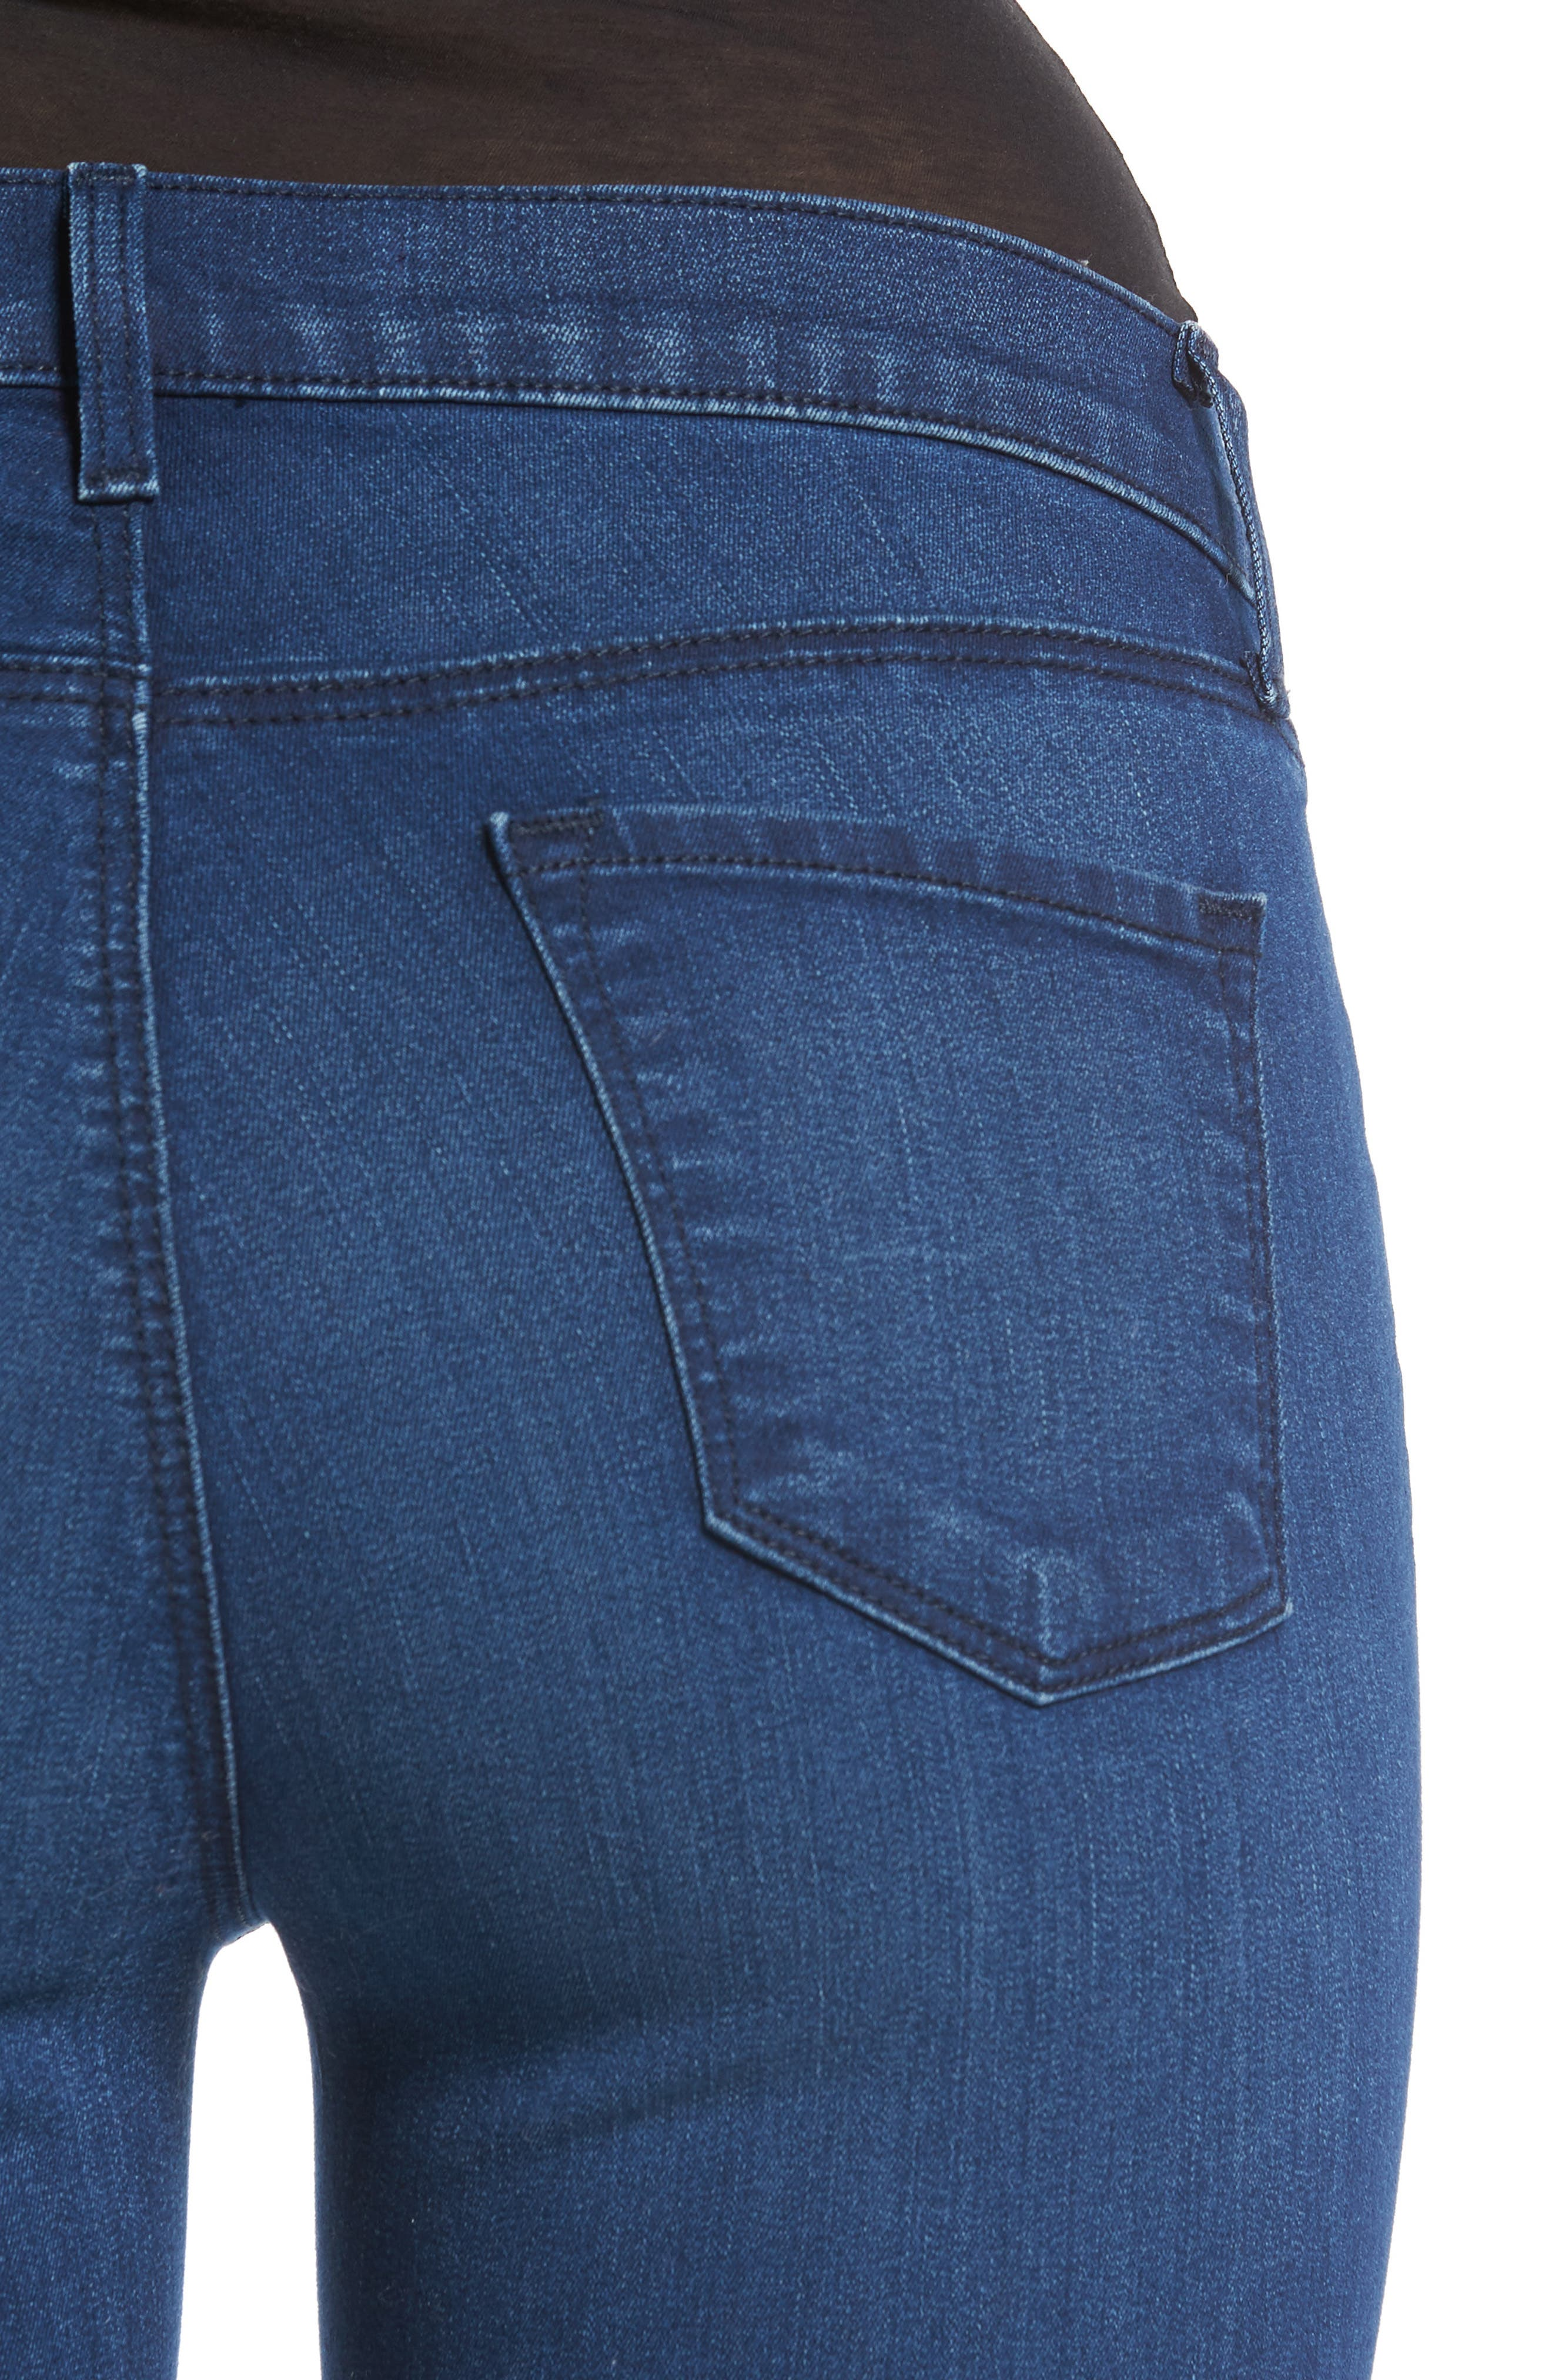 '811' Ankle Skinny Jeans,                             Alternate thumbnail 4, color,                             Sway